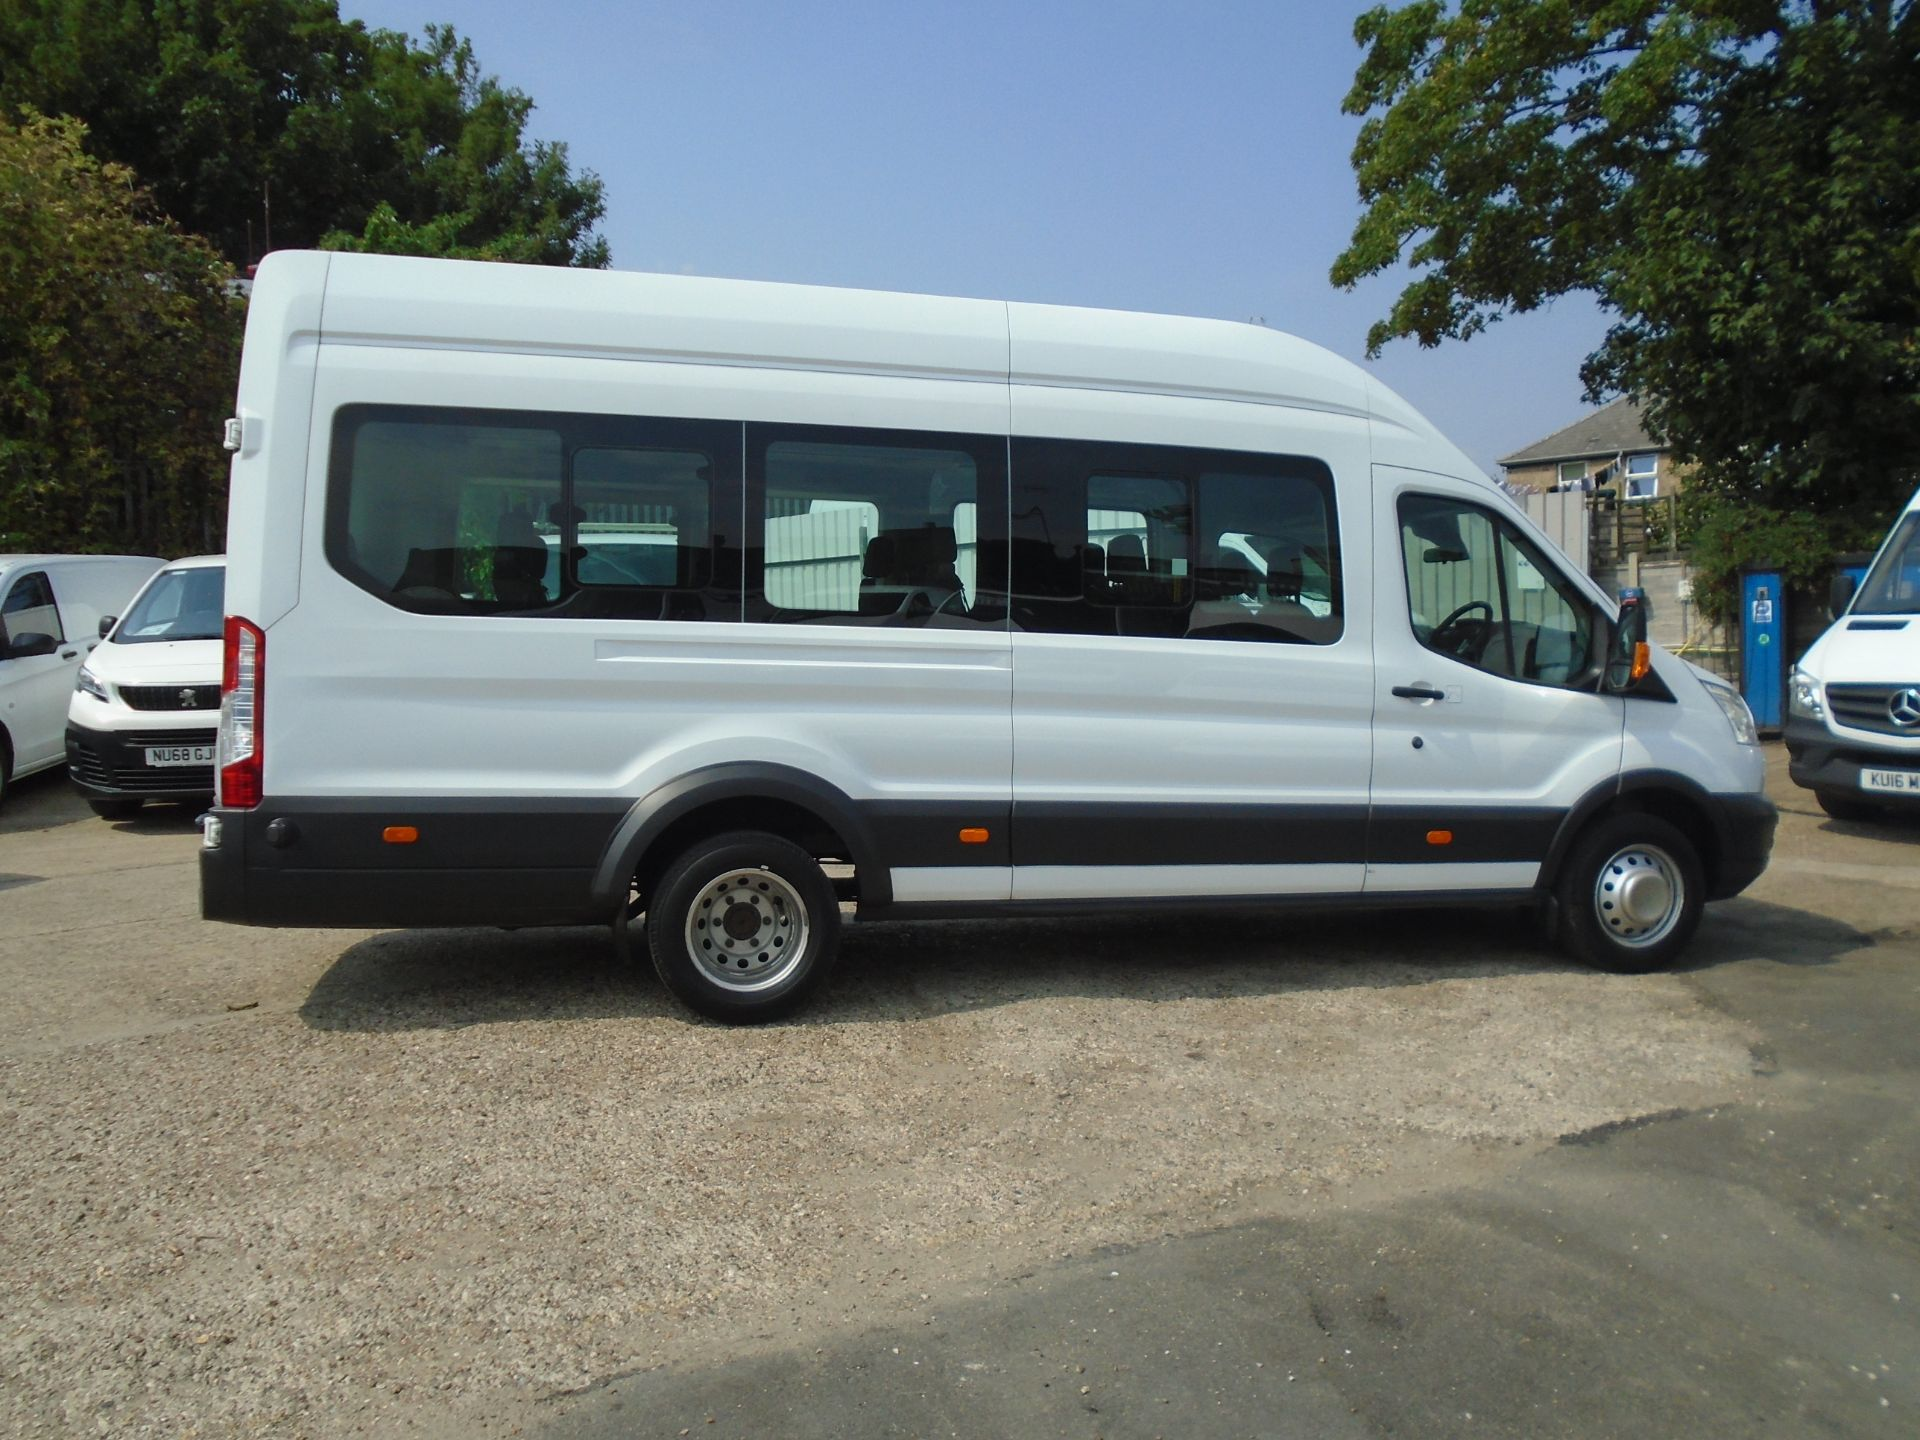 2016 Ford Transit 2.2 Tdci 125Ps H3 17 Seater (FP16UMV) Image 12